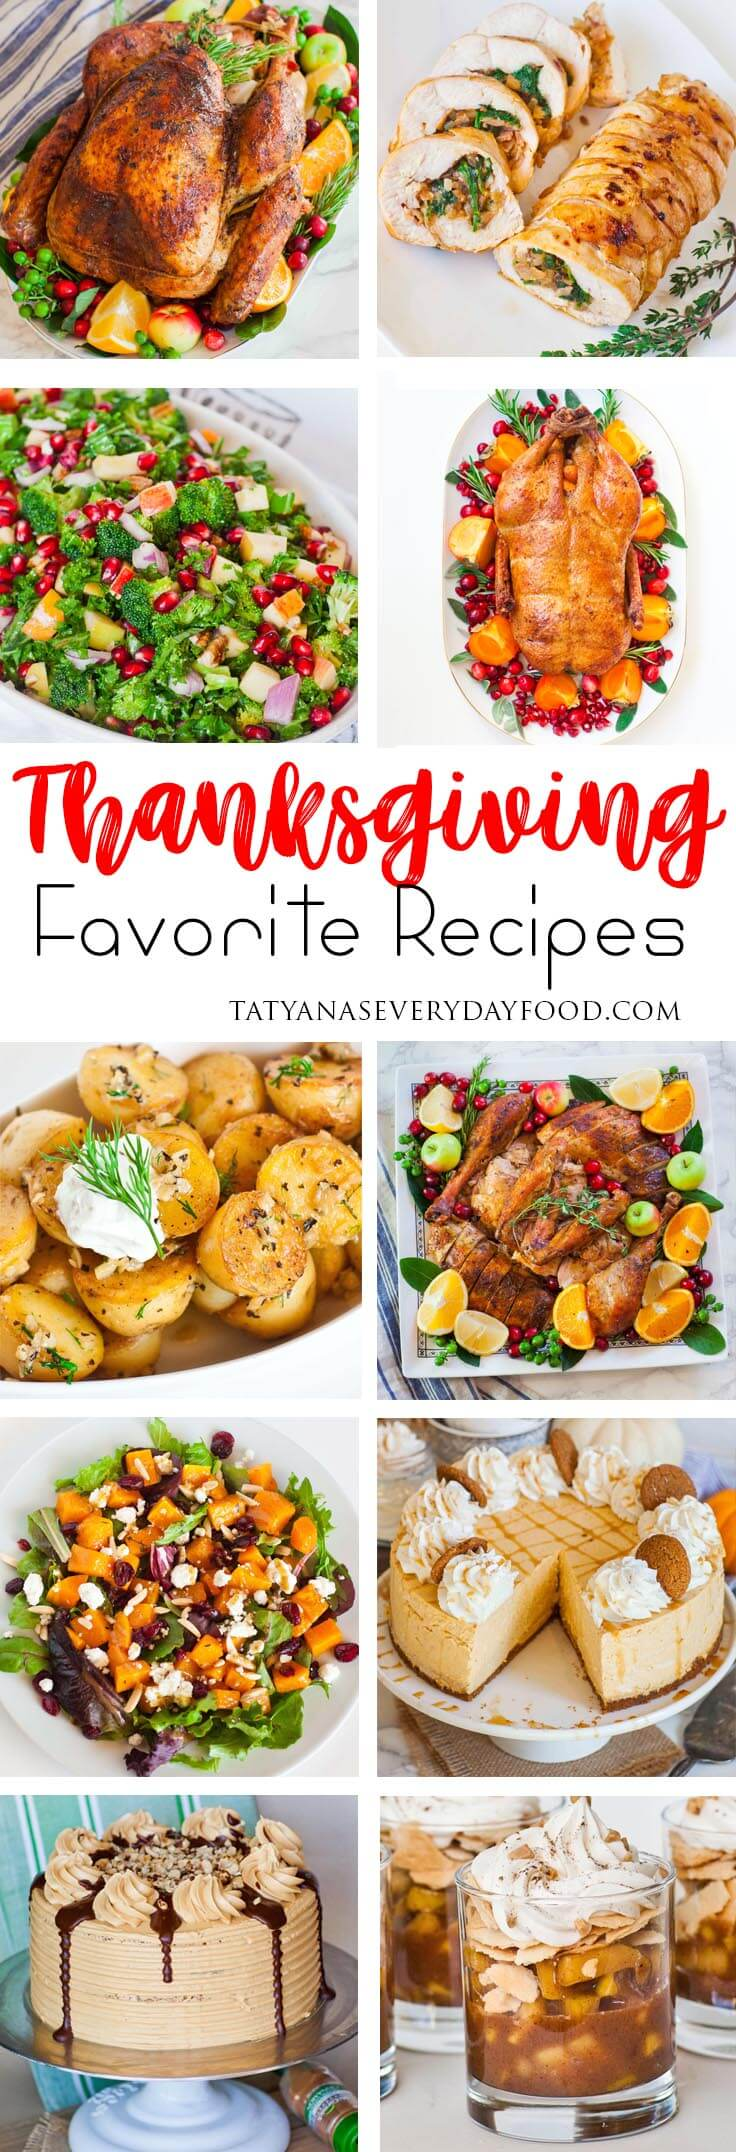 Best Thanksgiving recipes!